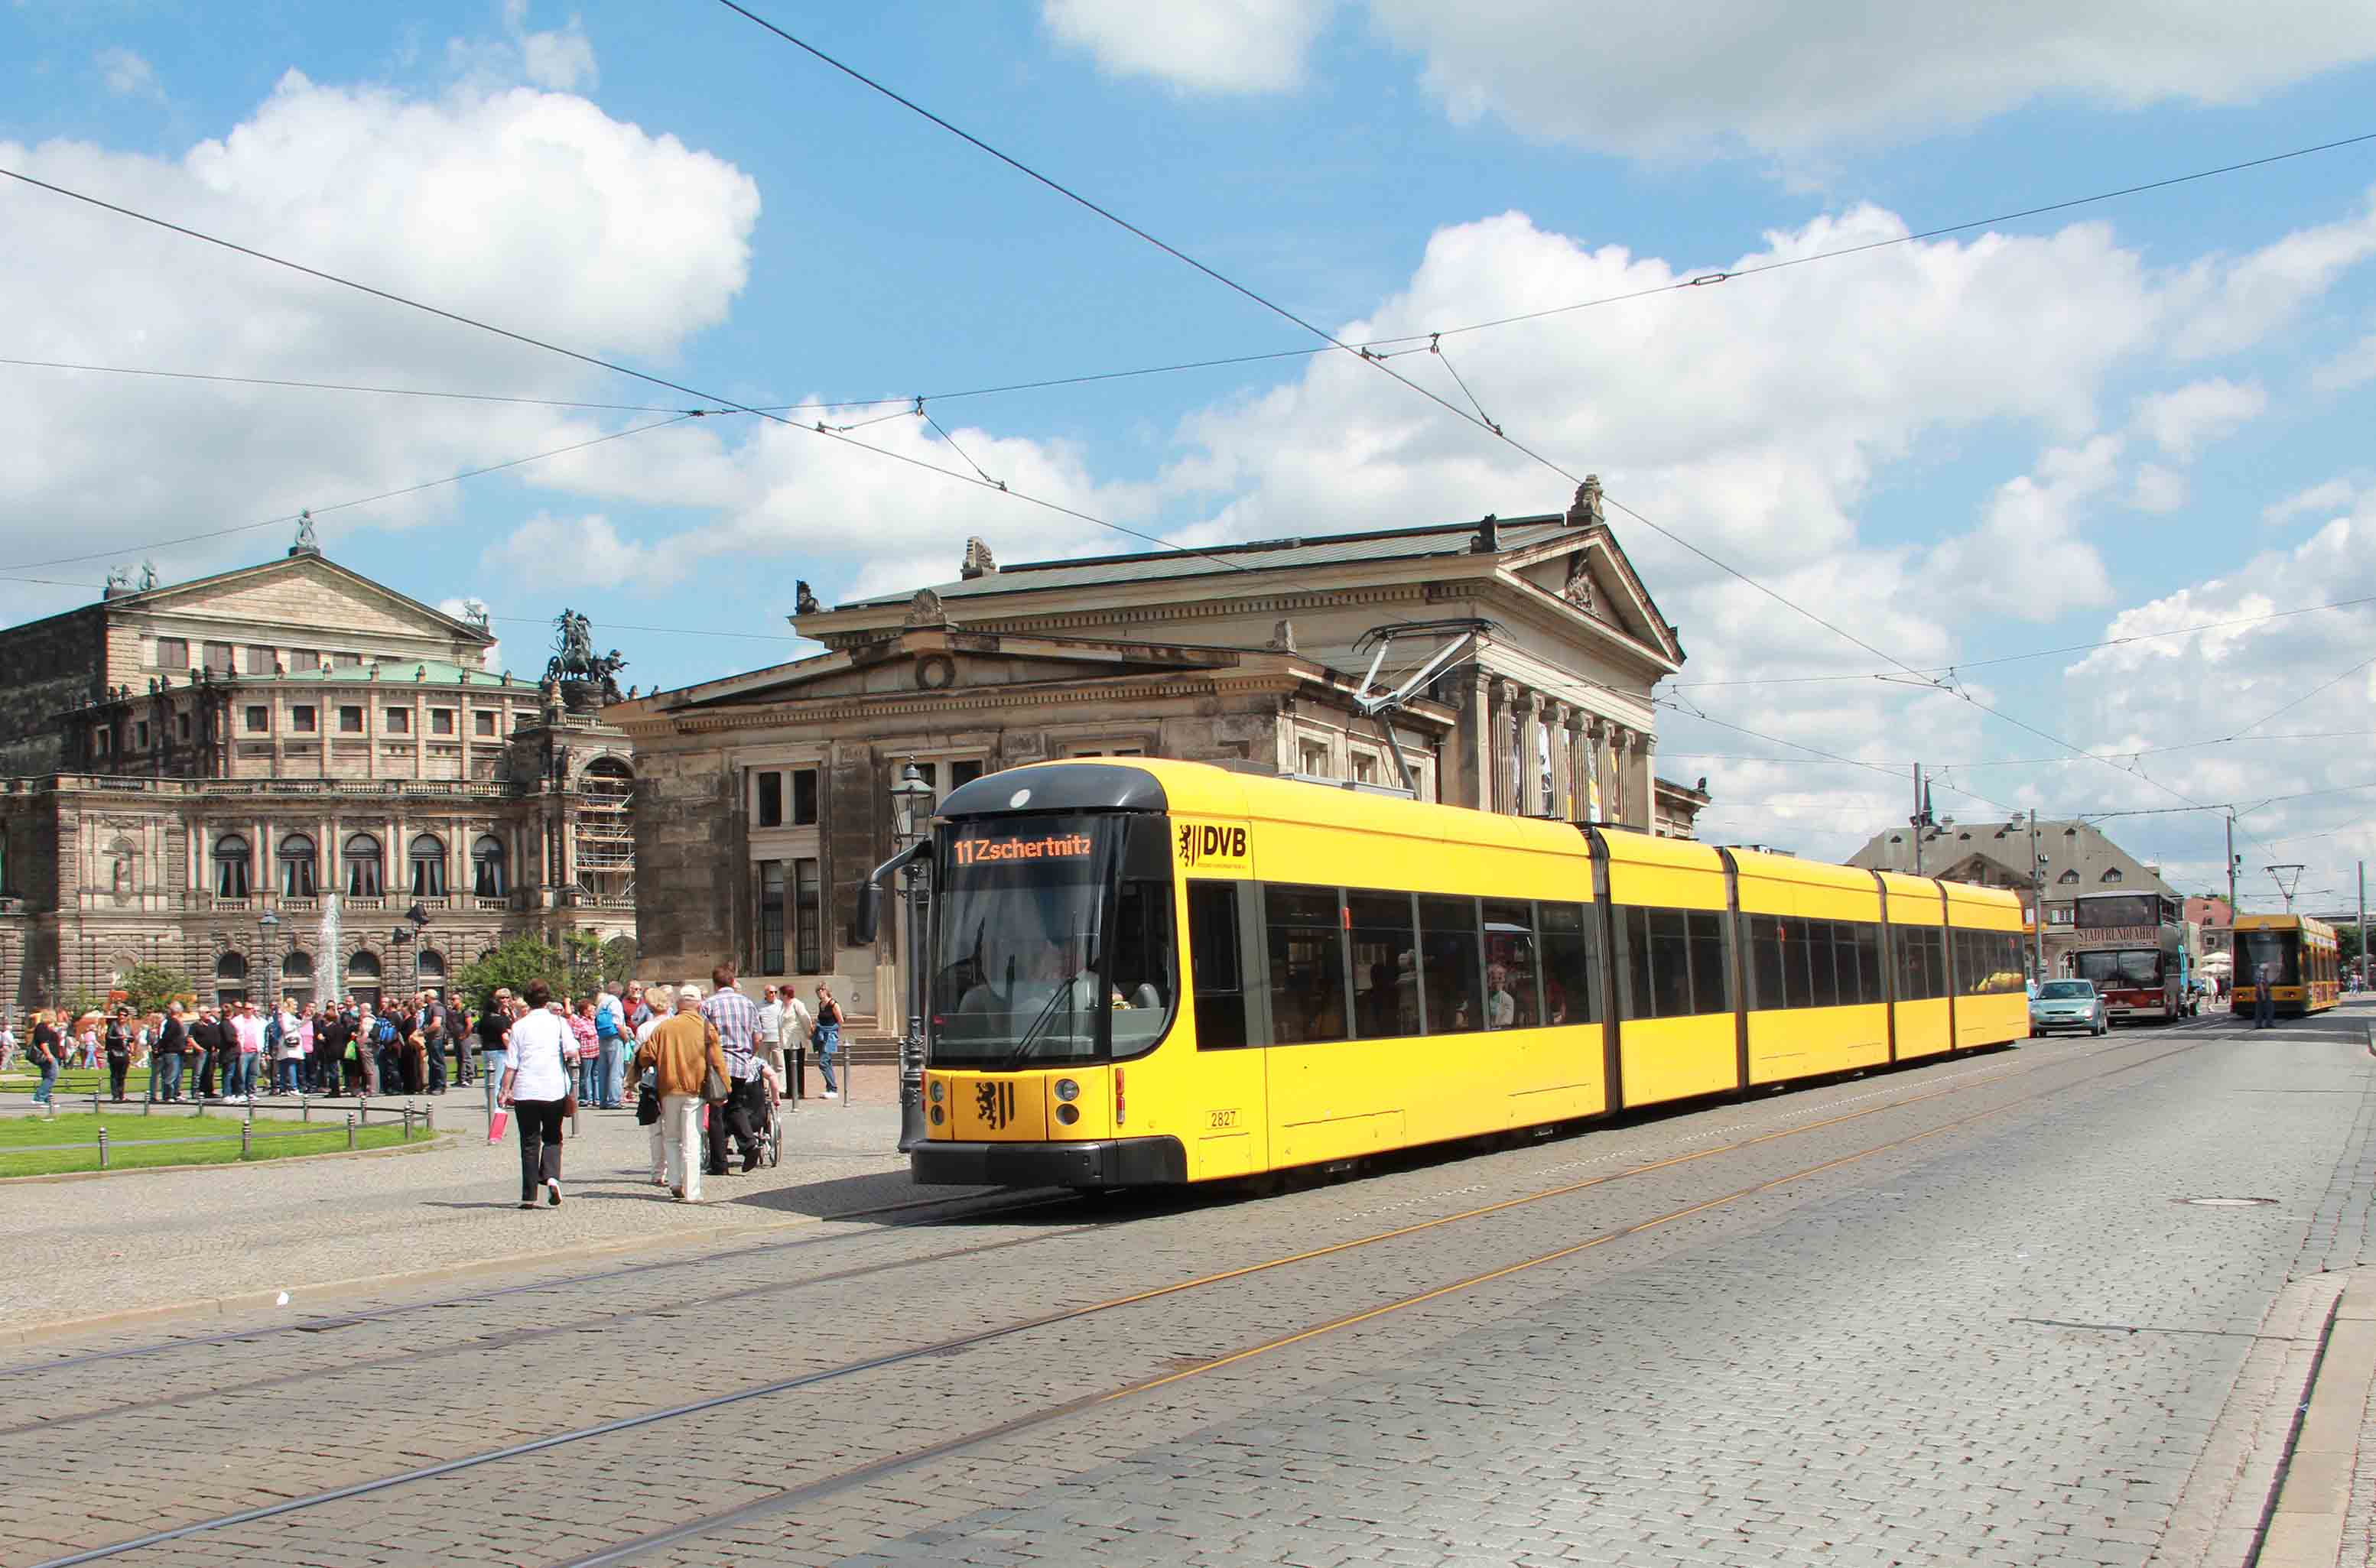 Yellow tram in front of Semper Opera House and Altstädter Wache